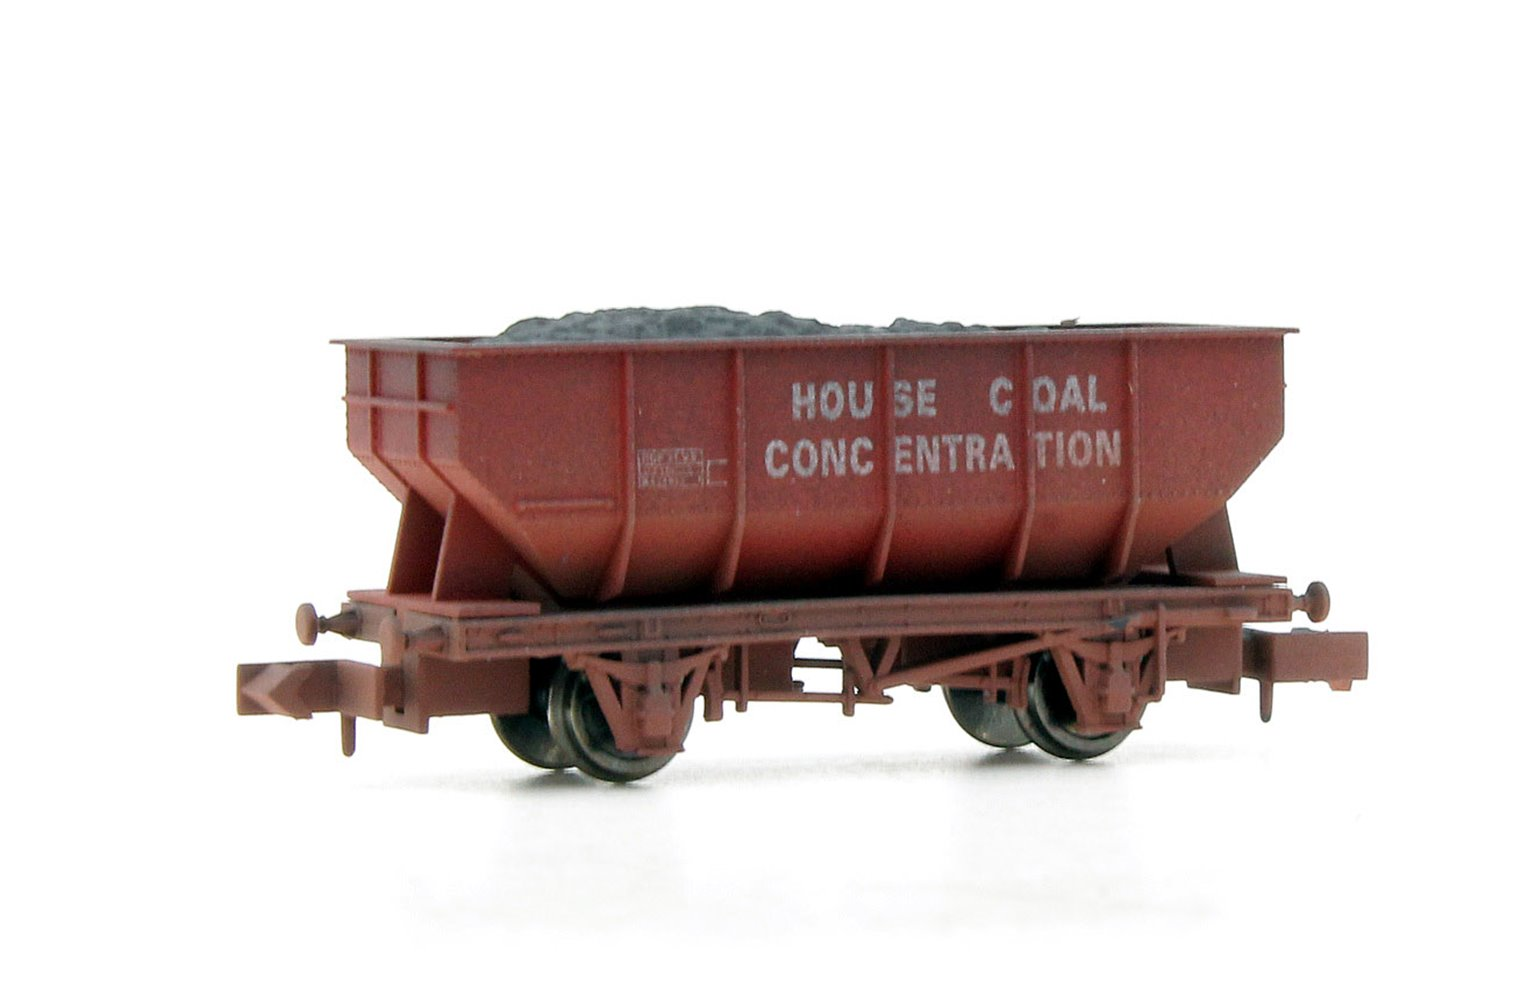 Dapol 2F-034-056 21-ton hopper B429912 in House Coal concentration livery - weathered